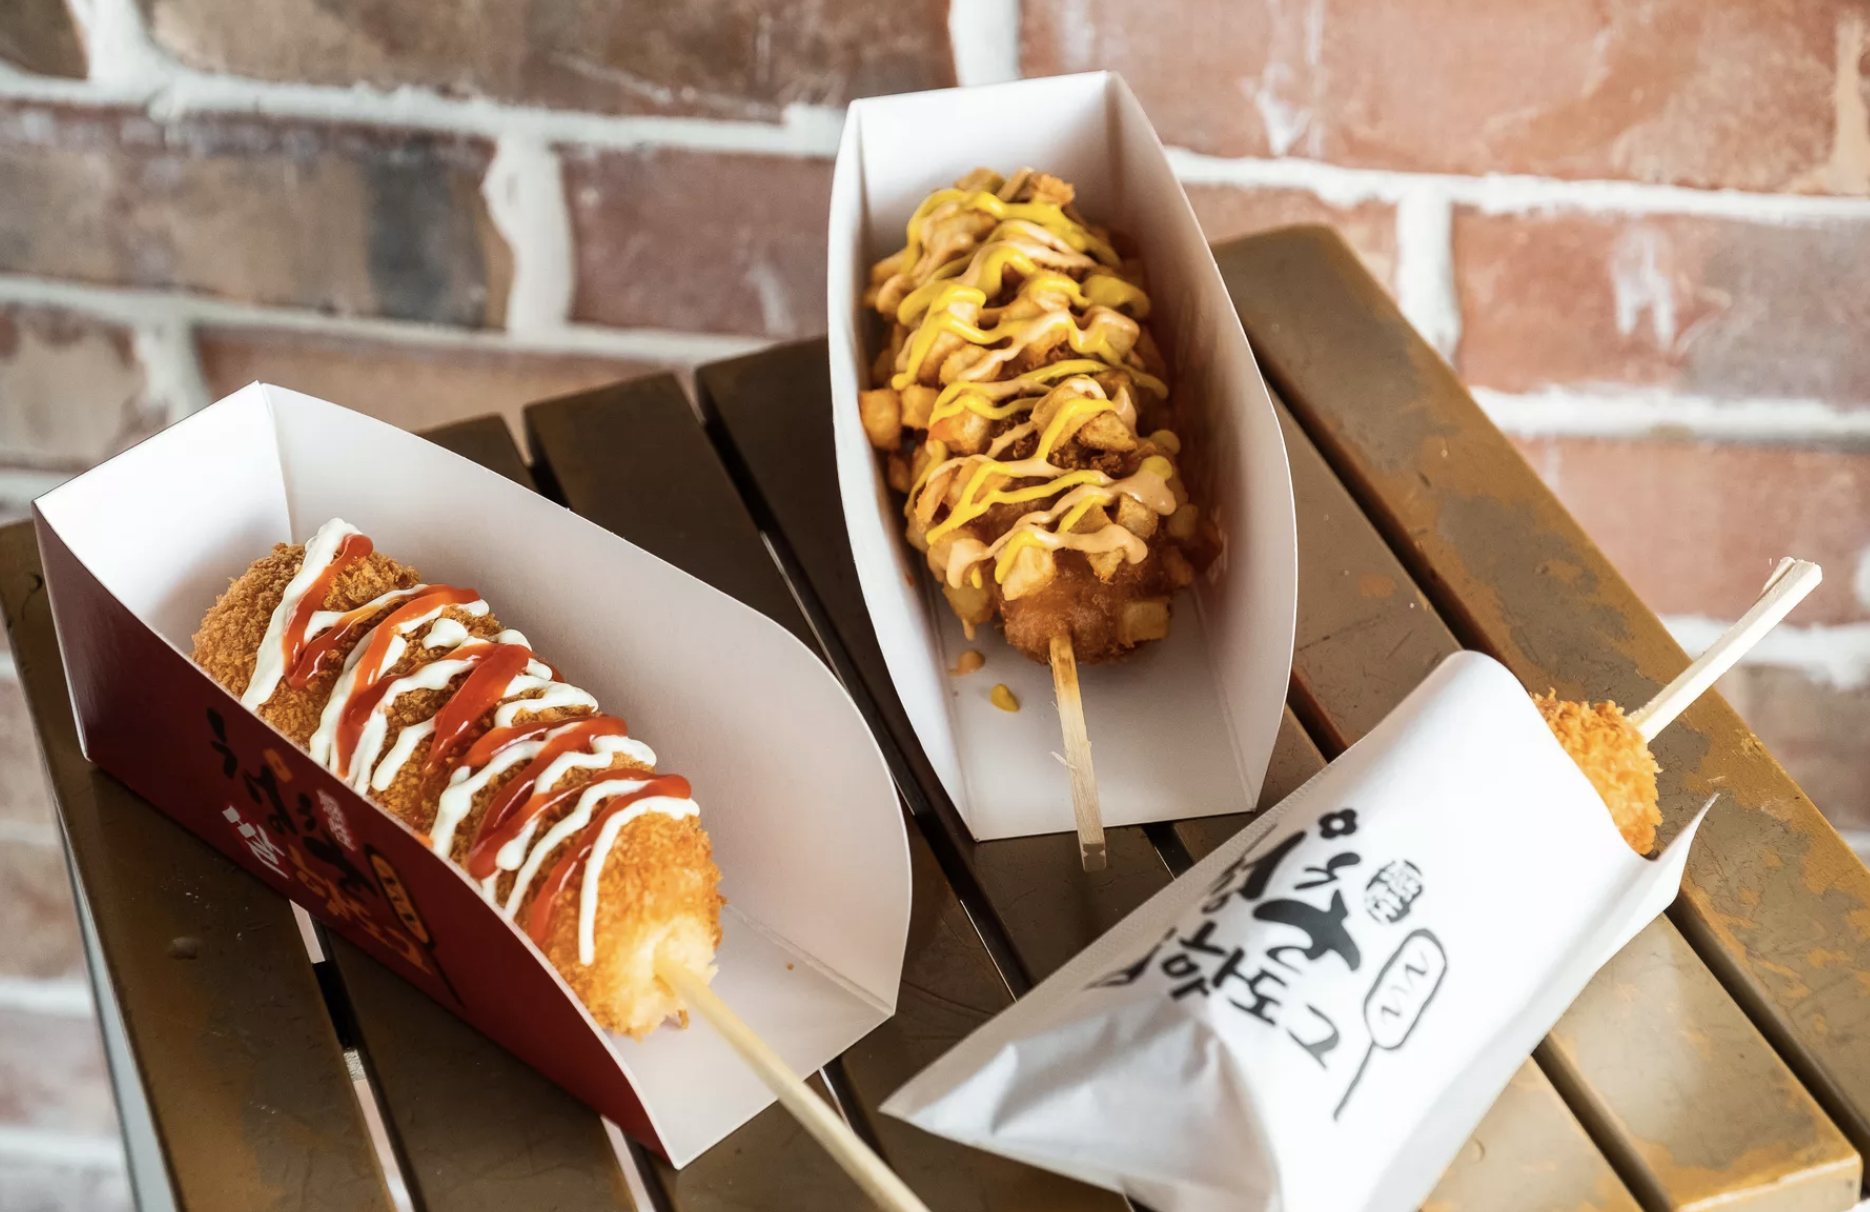 Massive Korean Rice Corndog Chain Will Open Its First Seattle Location Soon